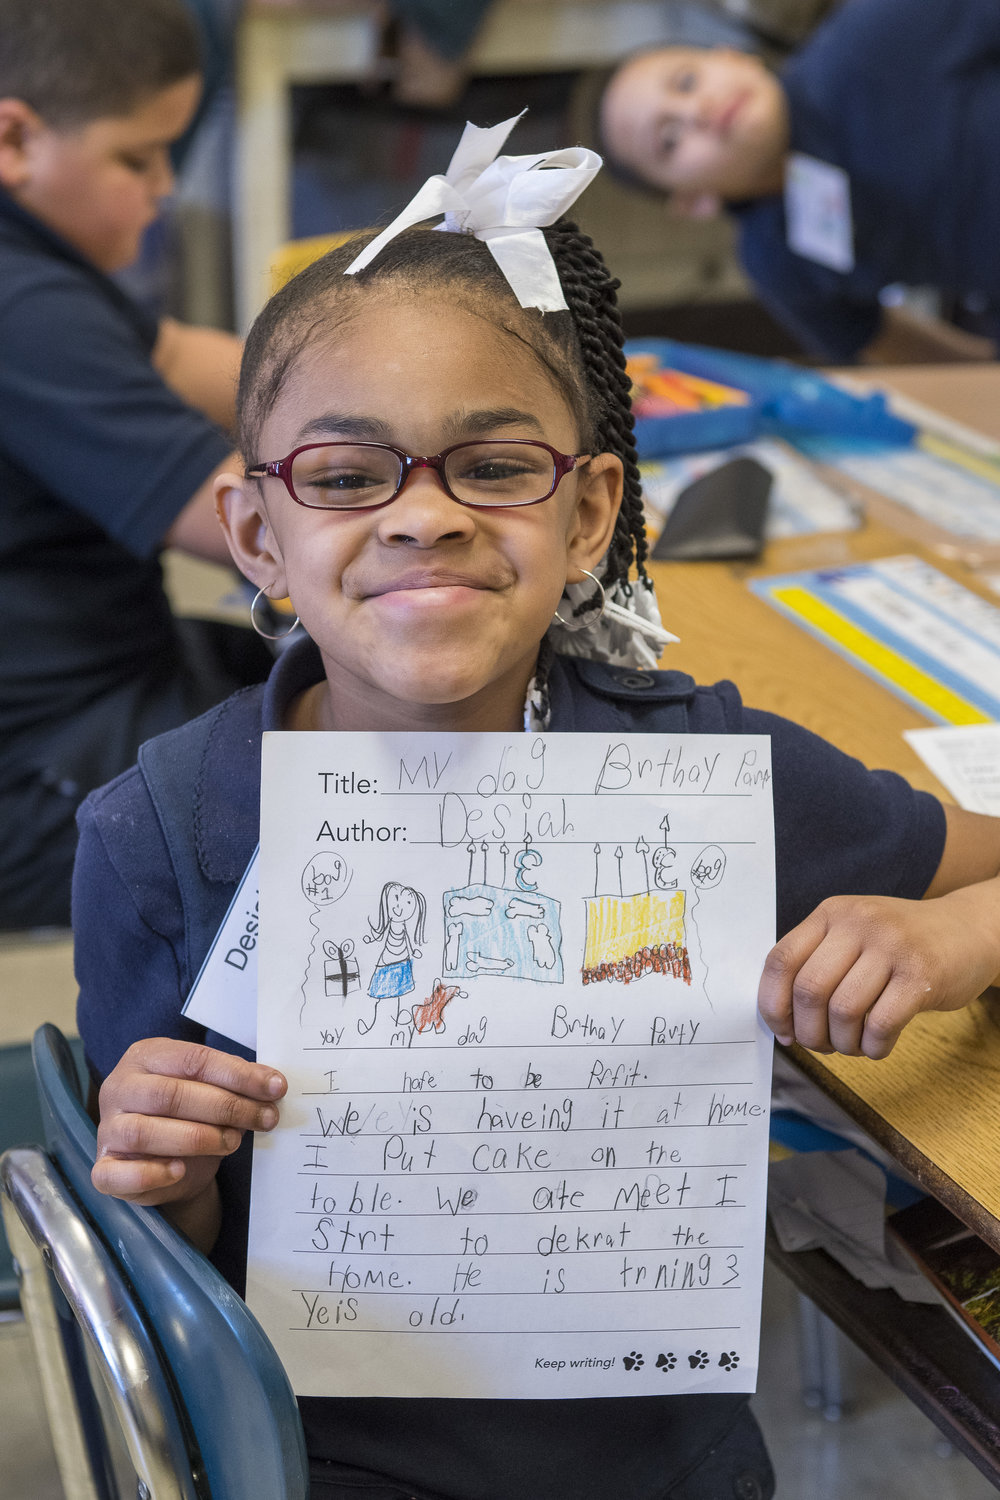 Second-grader Desiah shows off her story in her Tail Blazers program at Cameron Elementary. (M. OBrien)